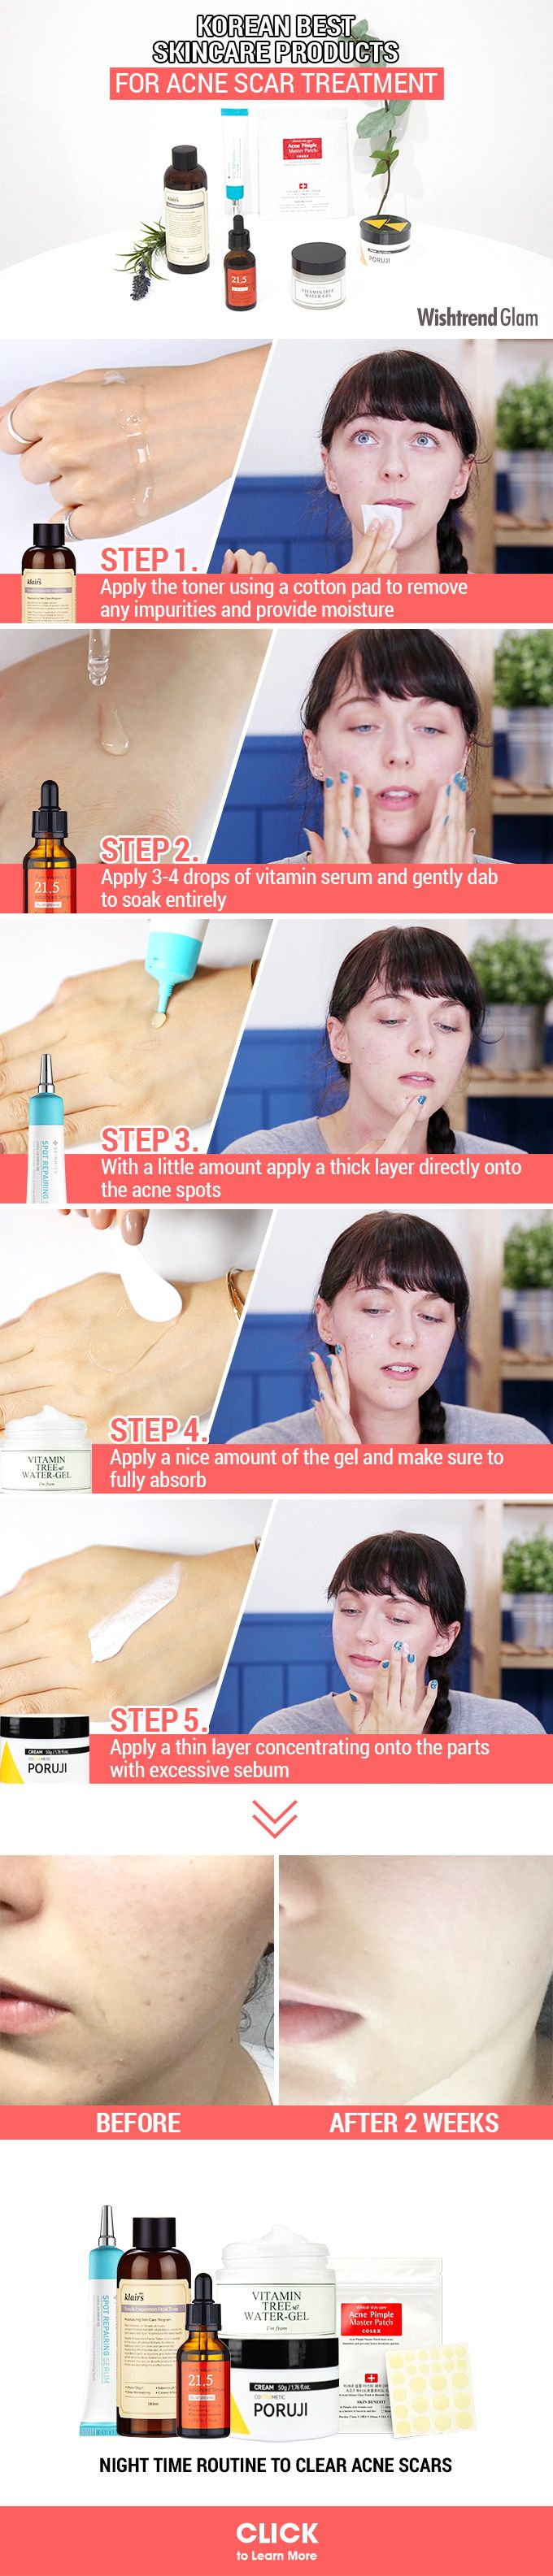 HOW TO EFFECTIVELY REMOVE ACNE SCARS | KOREAN NIGHT CARE ROUTINE FOR ACNE SCAR TREATMENT